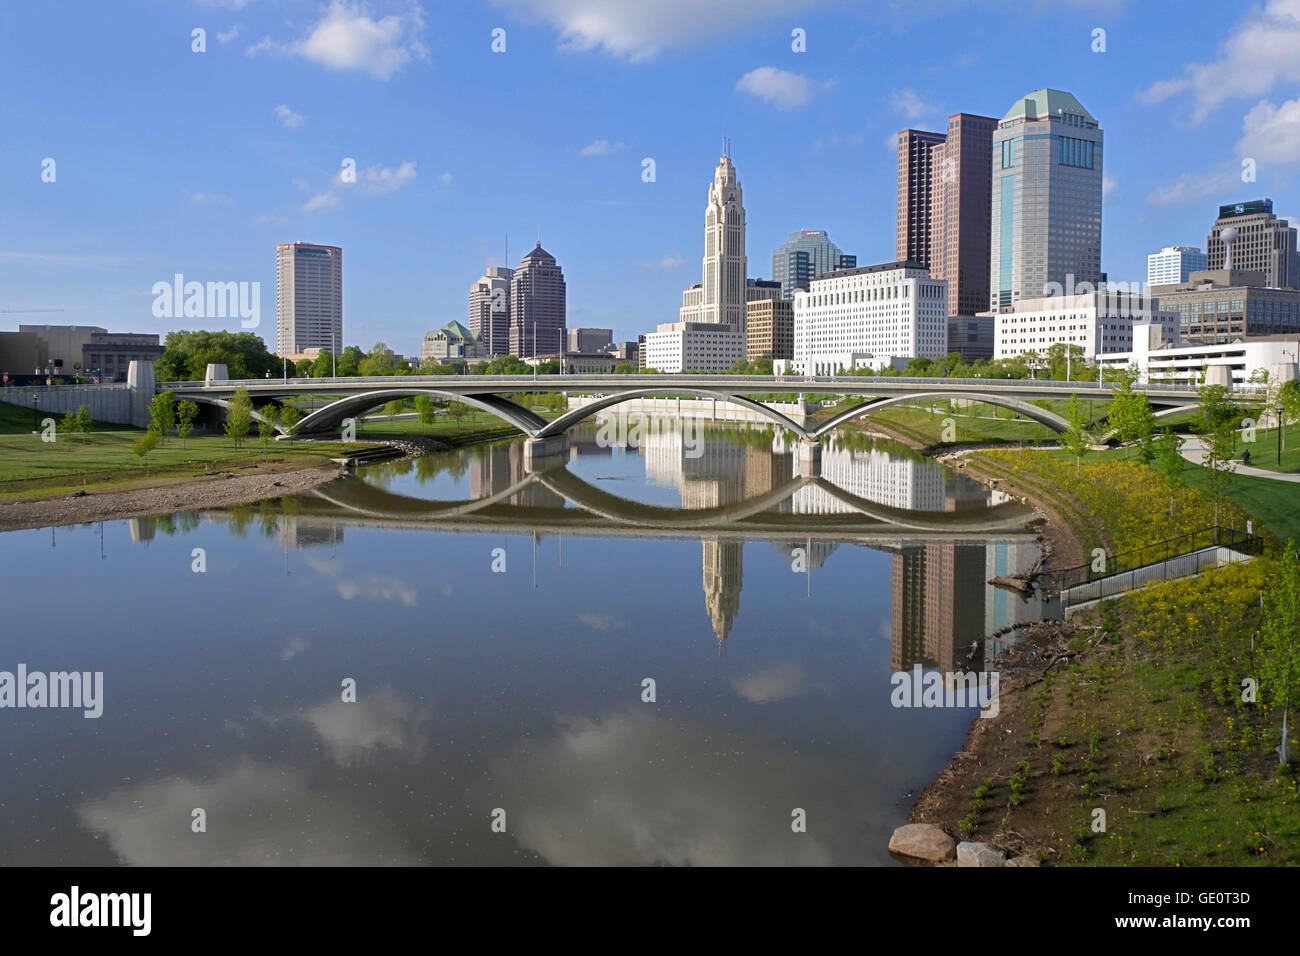 Landscape image of Columbus Ohio Skyline in the USA showing sky scrapers on  banks of River Scioto great reflections of bridge and buildings on river - Landscape Image Of Columbus Ohio Skyline In The USA Showing Sky